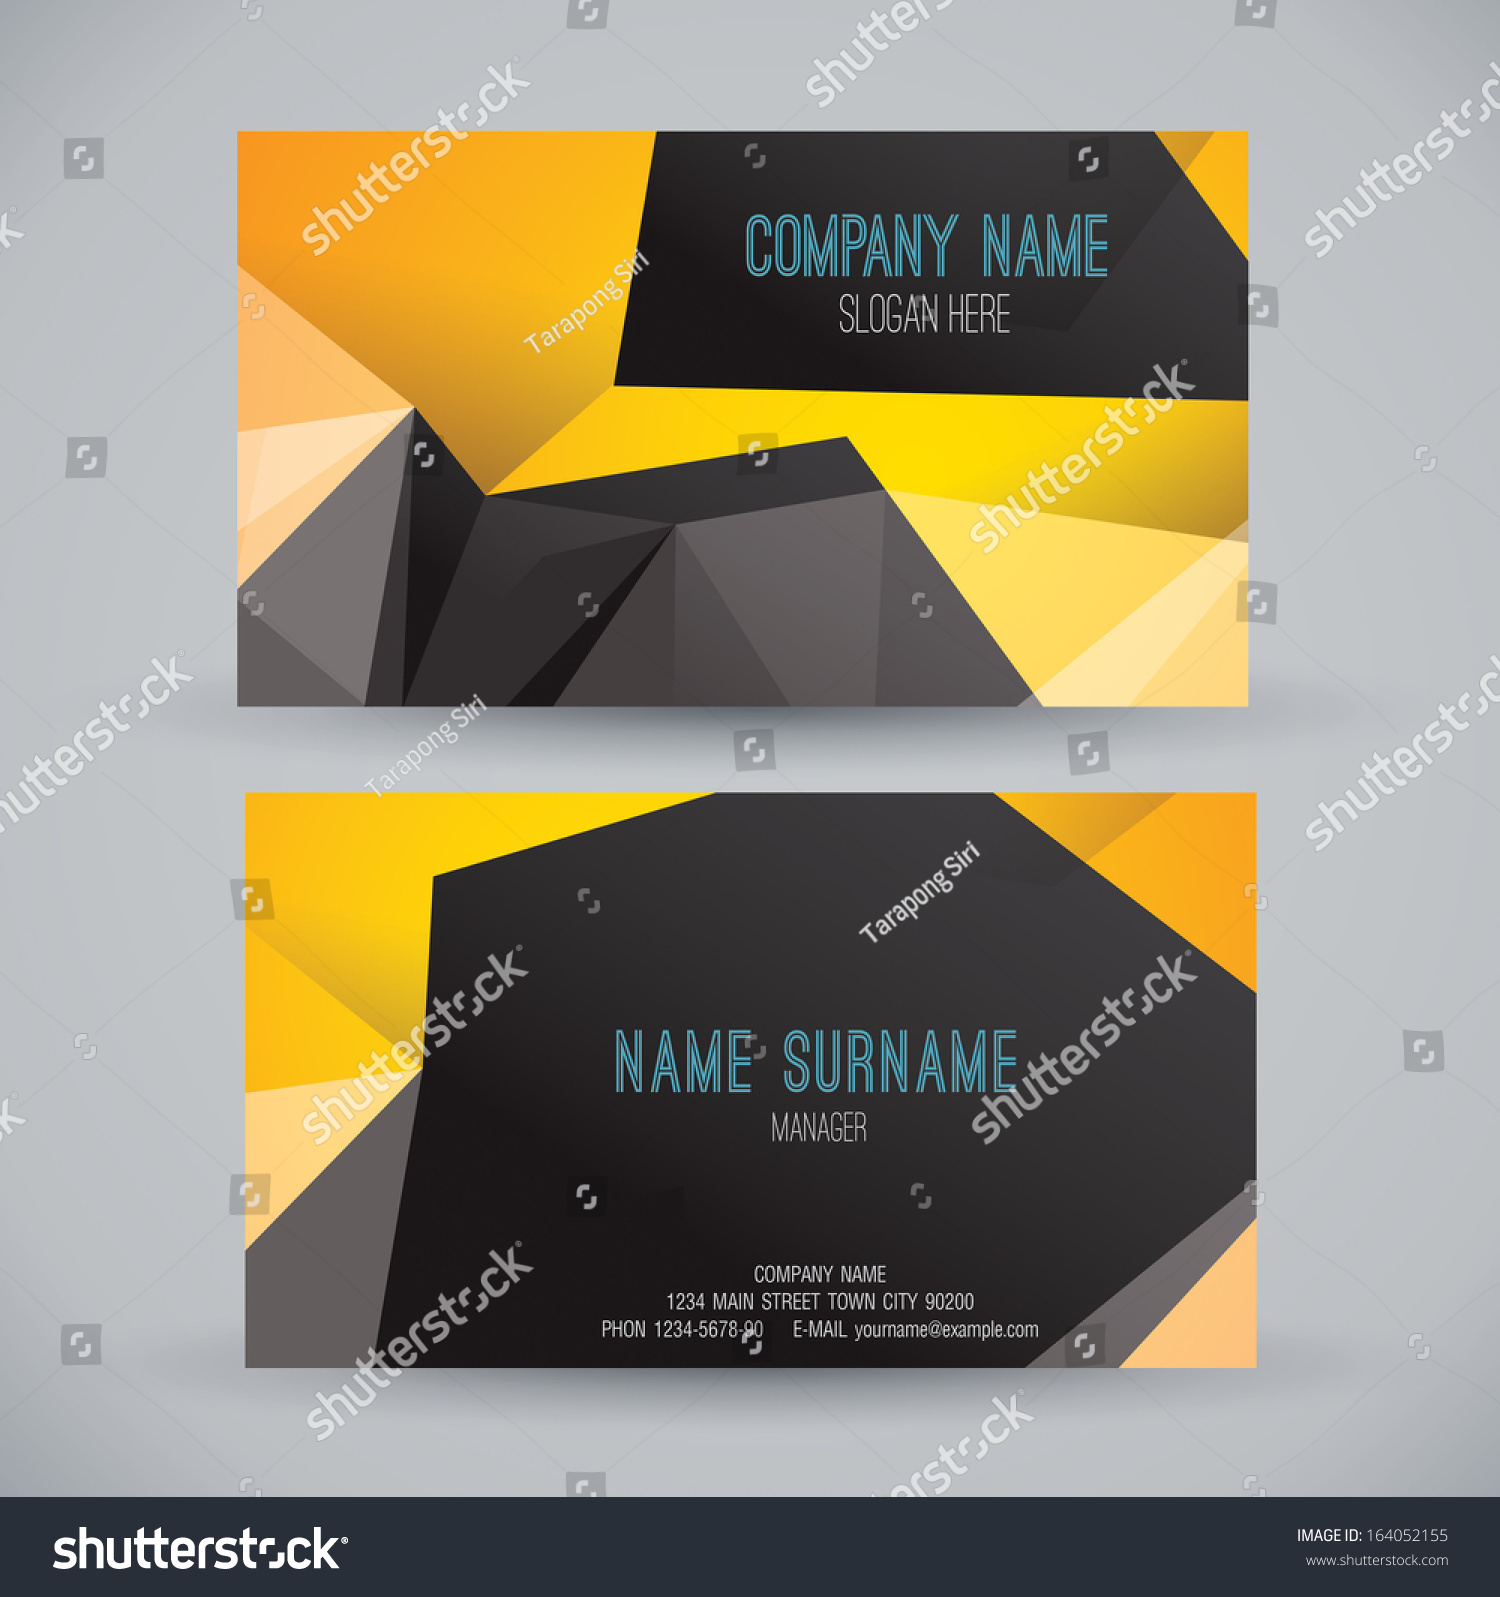 Business card template name card abstract stock vector for Business card background vector